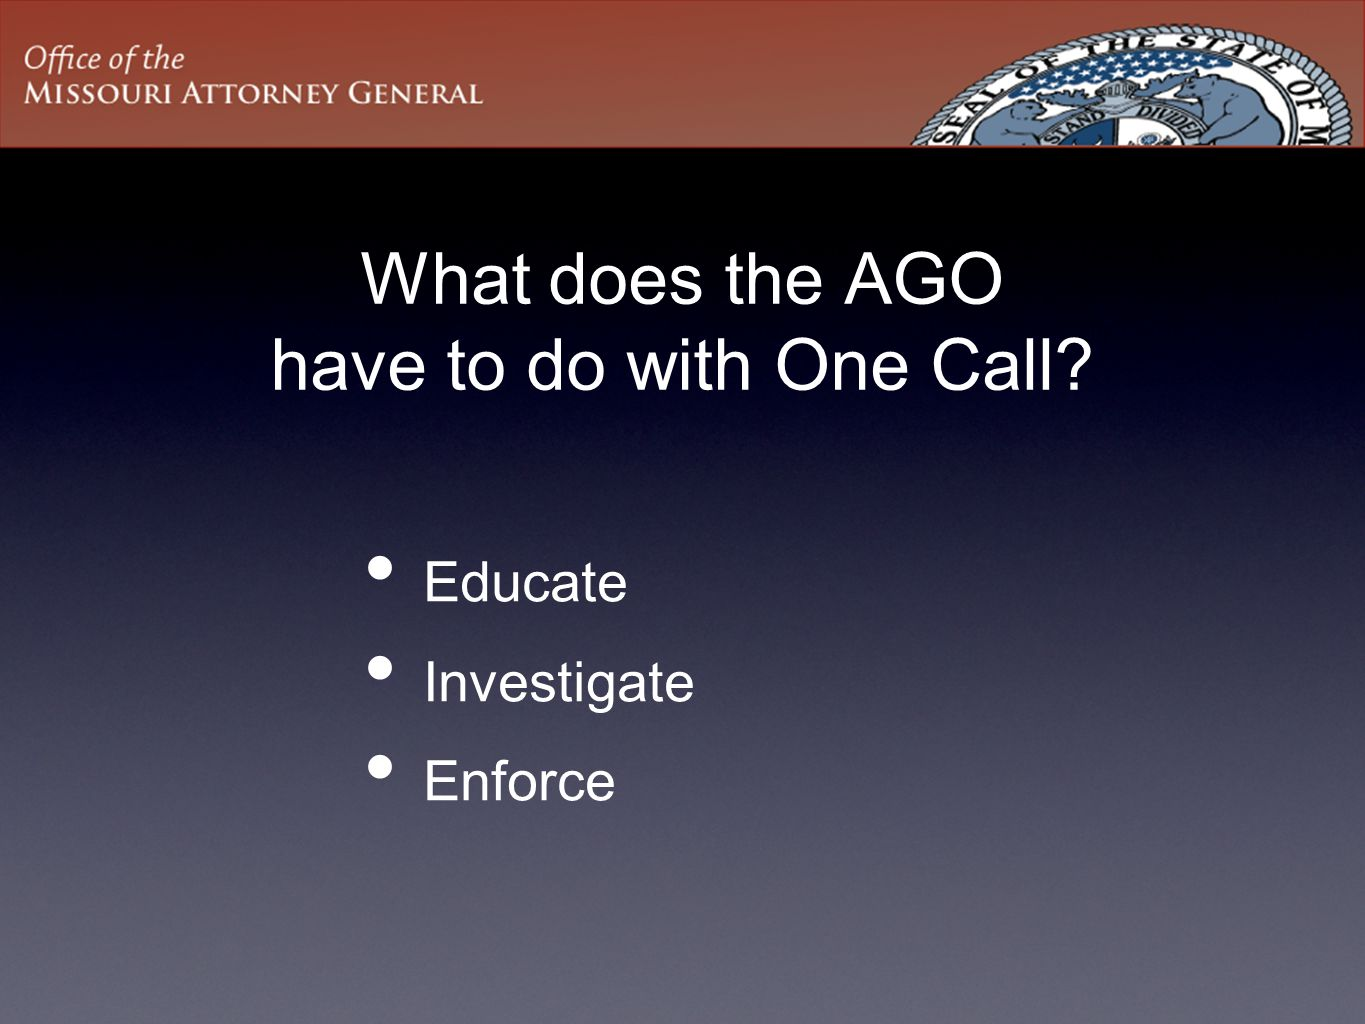 What does the AGO have to do with One Call